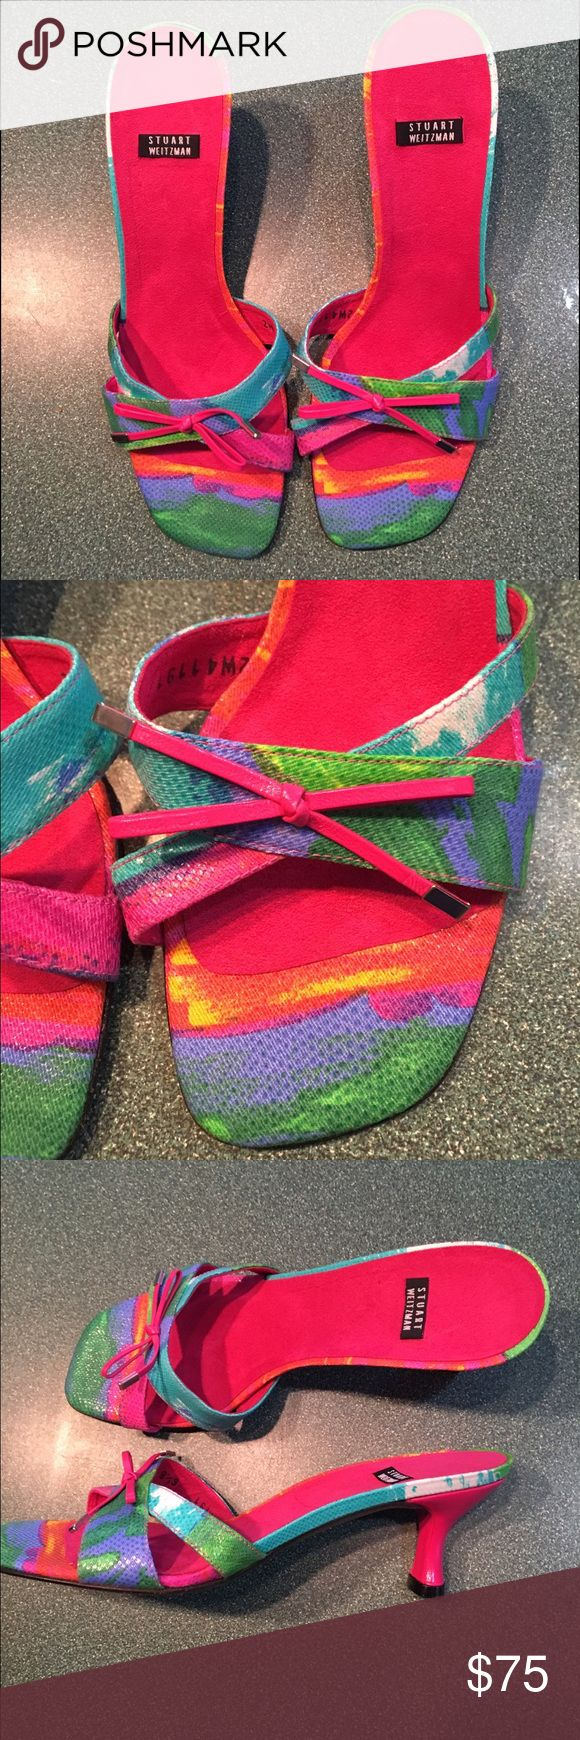 Stuart weitzman multi color slide sandal 6 1/2 new Stuart weitzman multi color sandal new no box size 6 1:2 leather sole pink kitten heel . Perfect ft spring or summer outfits Stuart Weitzman Shoes Sandals